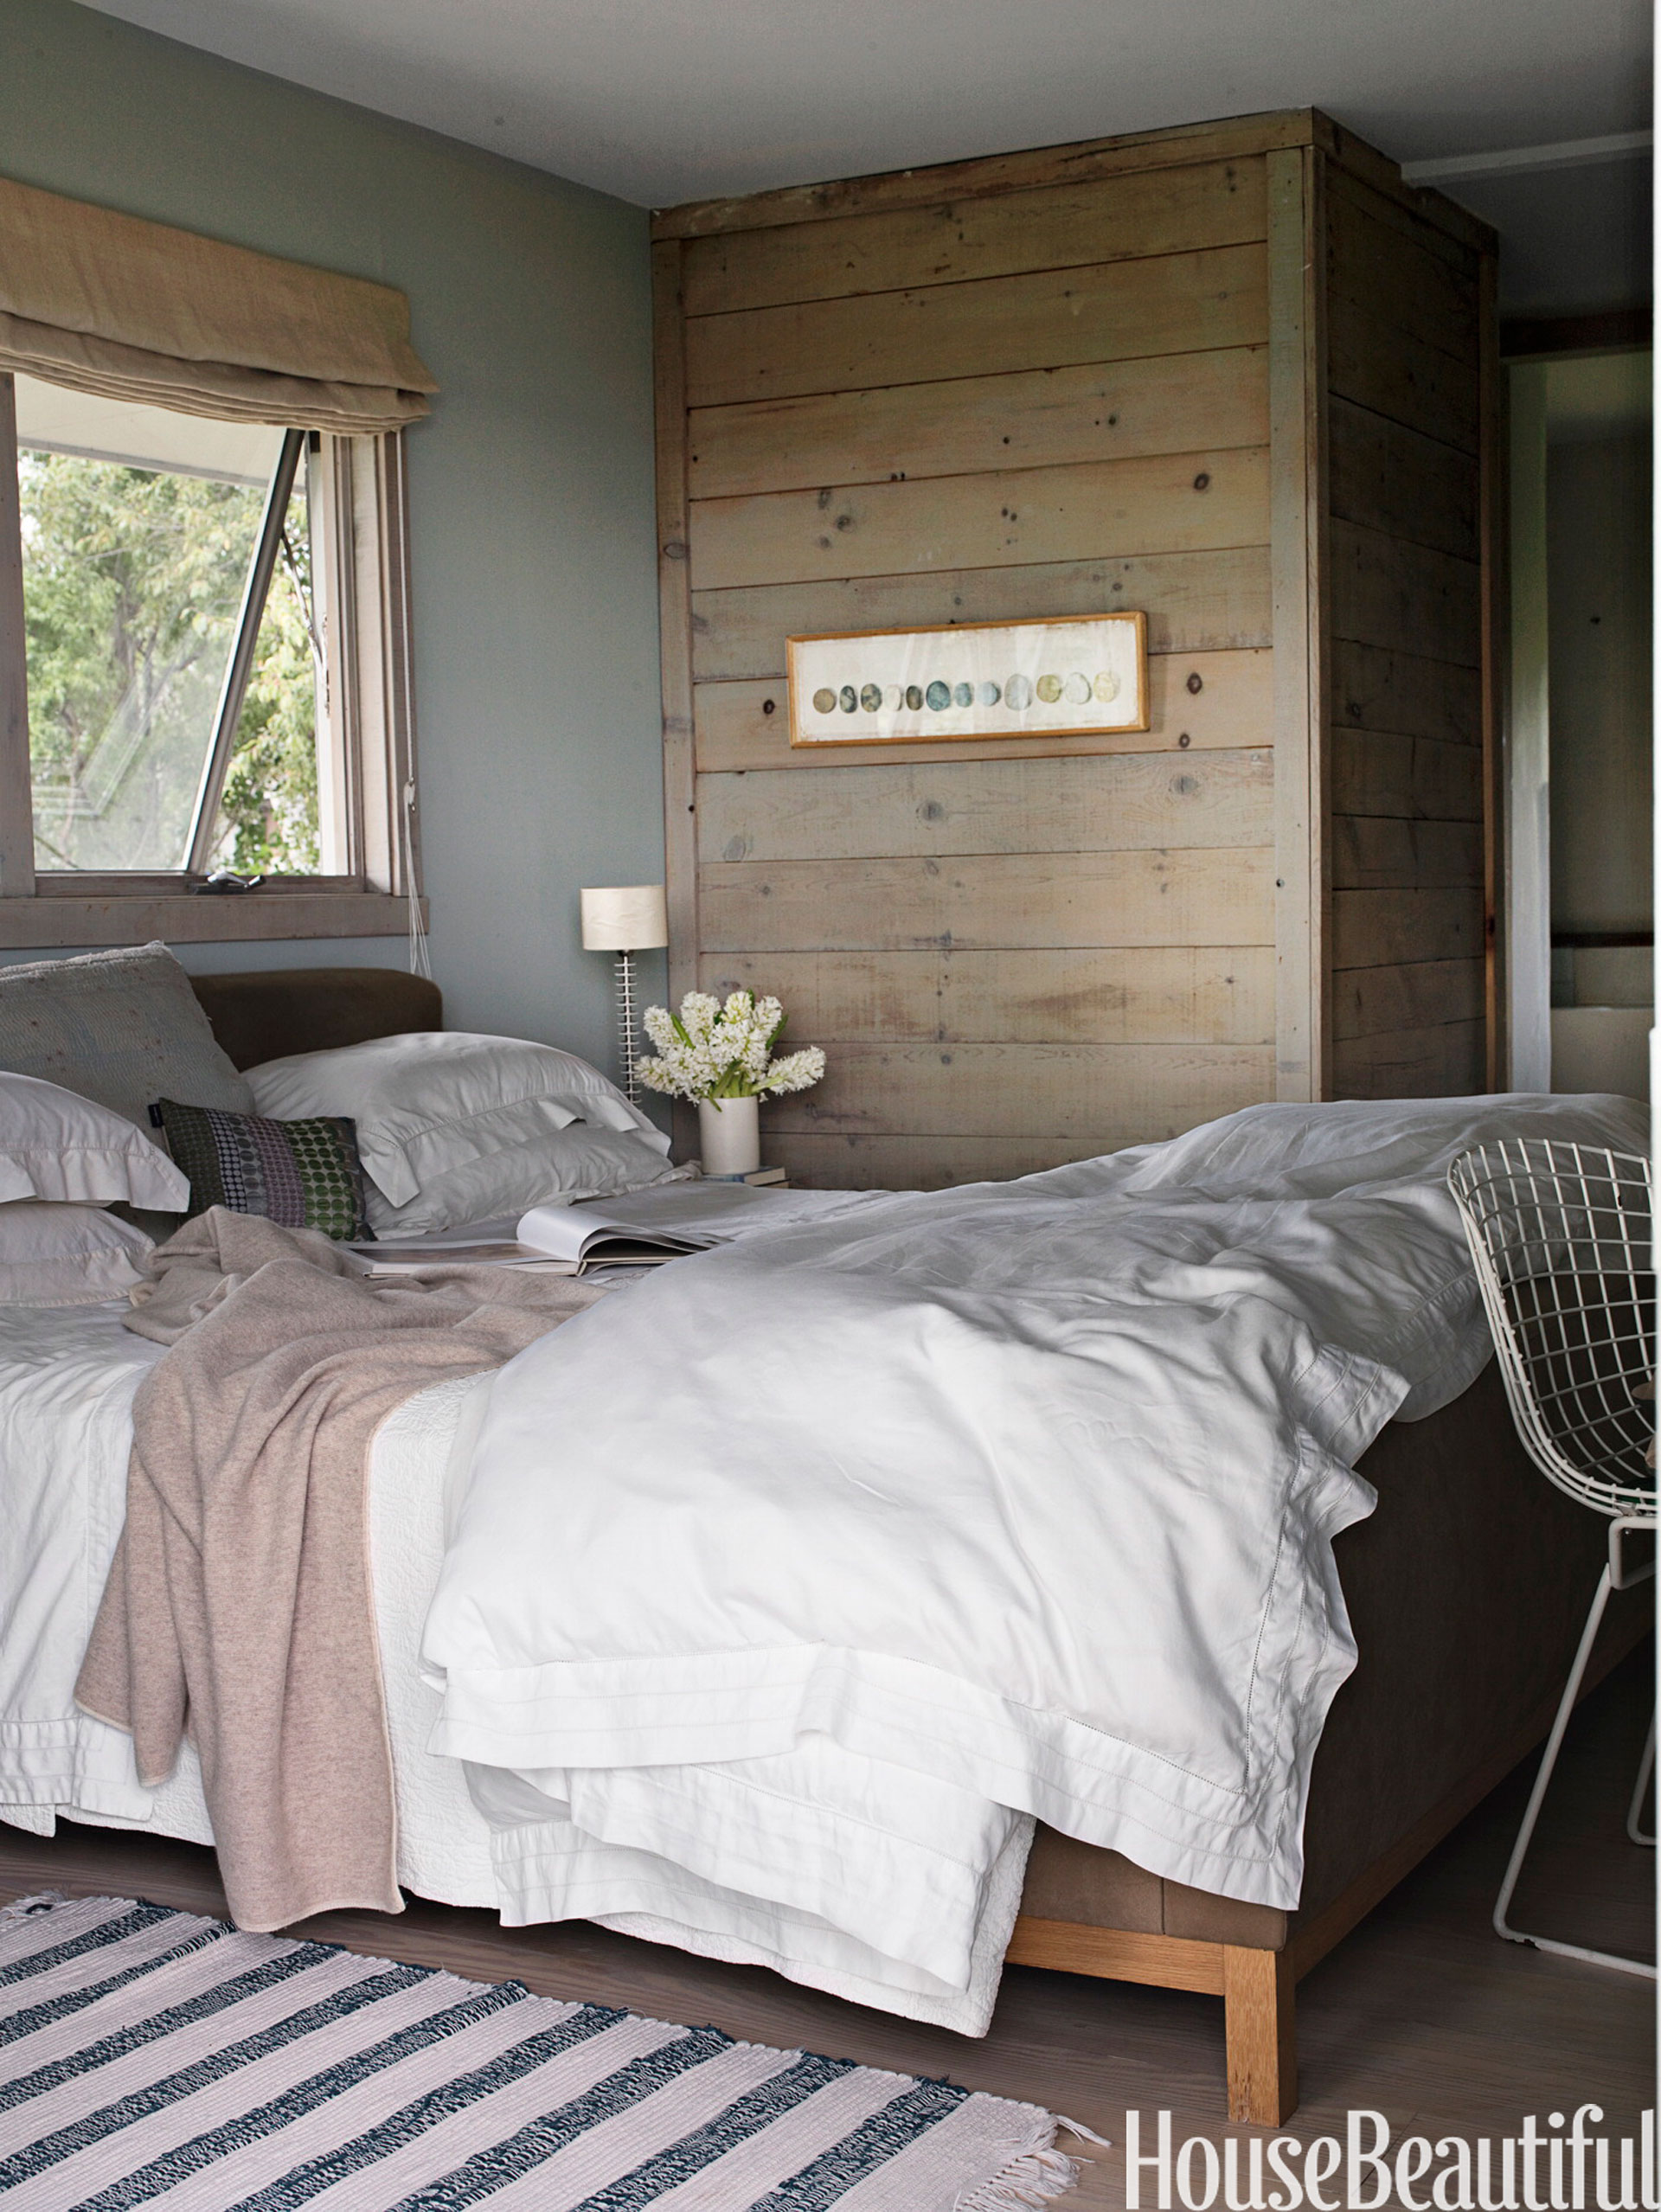 15 Cozy Bedrooms How To Make Your Bedroom Feel Cozy